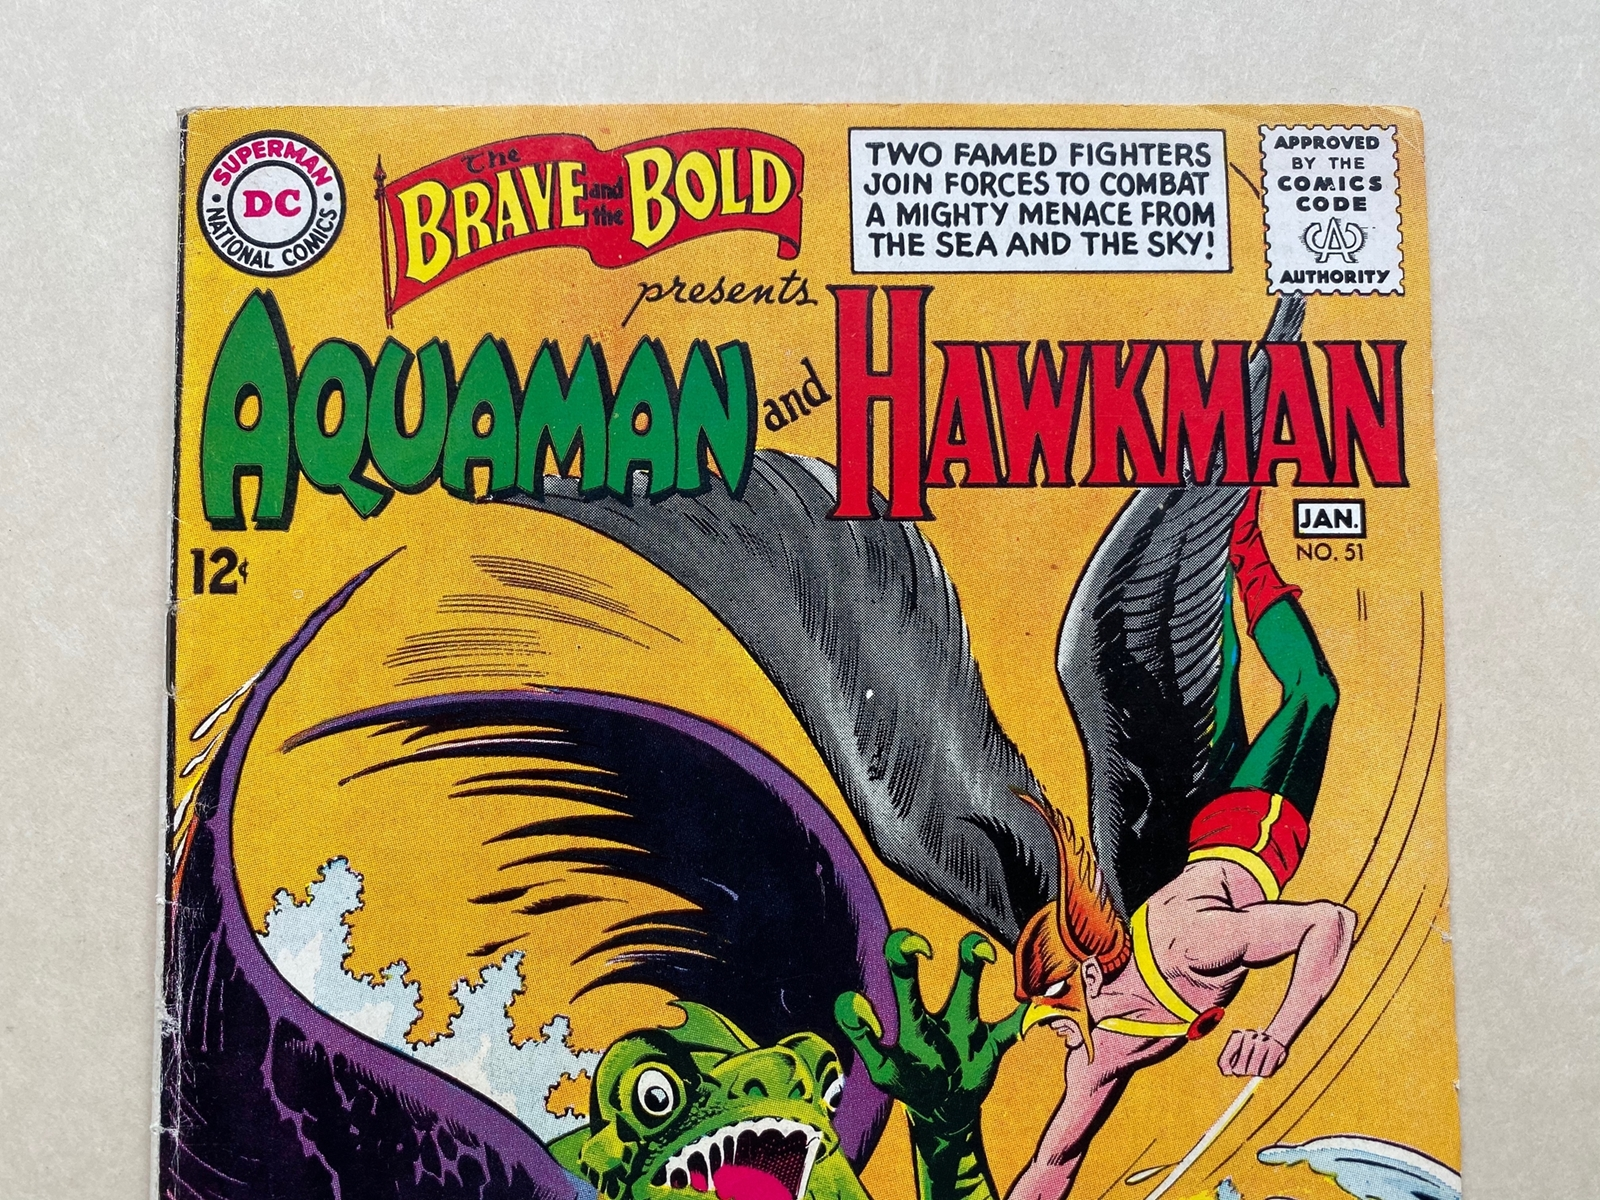 BRAVE & BOLD #51 - AQUAMAN & HAWKMAN - (1964 - DC) FN/VFN (Cents Copy) - Pre-dates Hawkman #1 - - Image 3 of 10